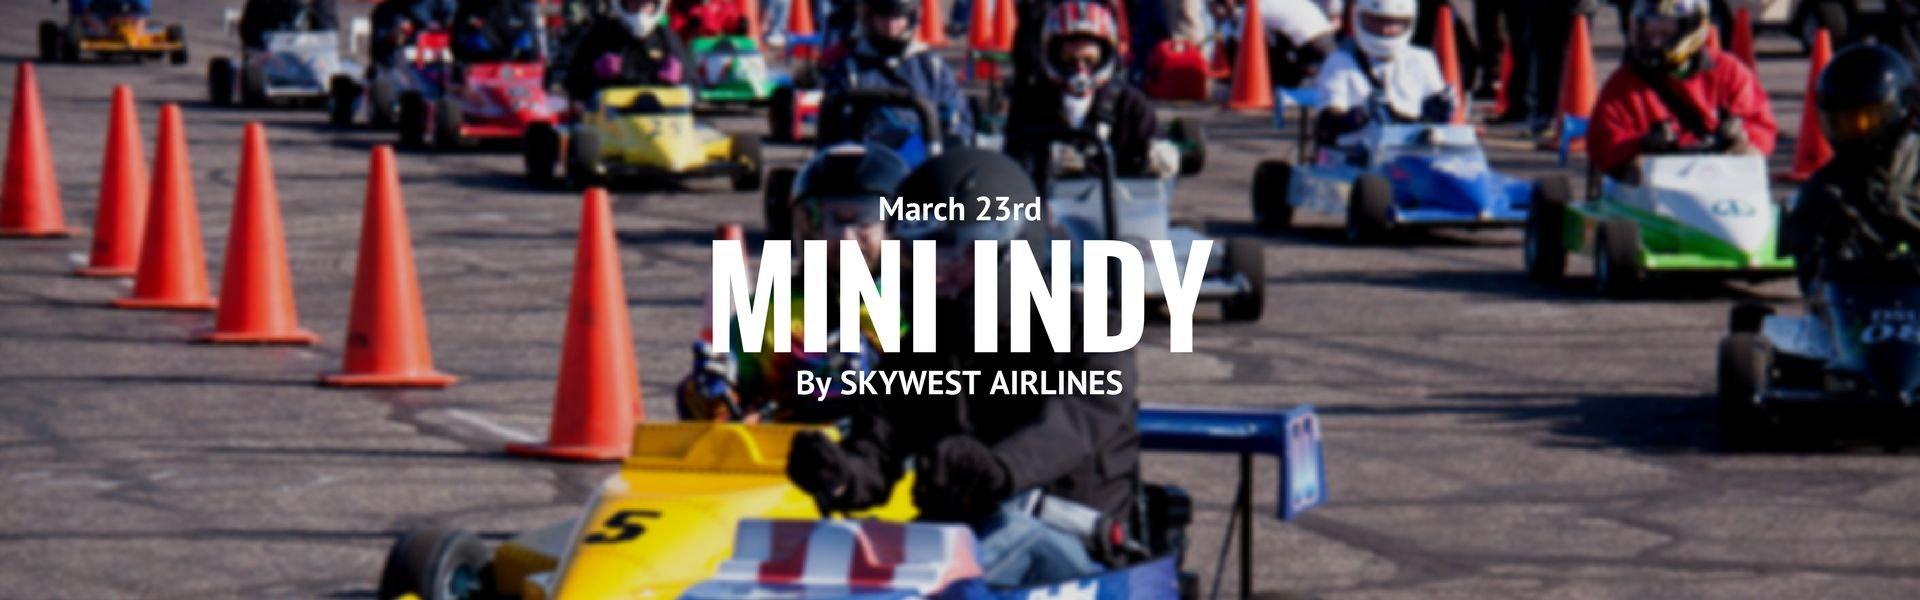 Ready, Set, Go! to the Mini-Indy